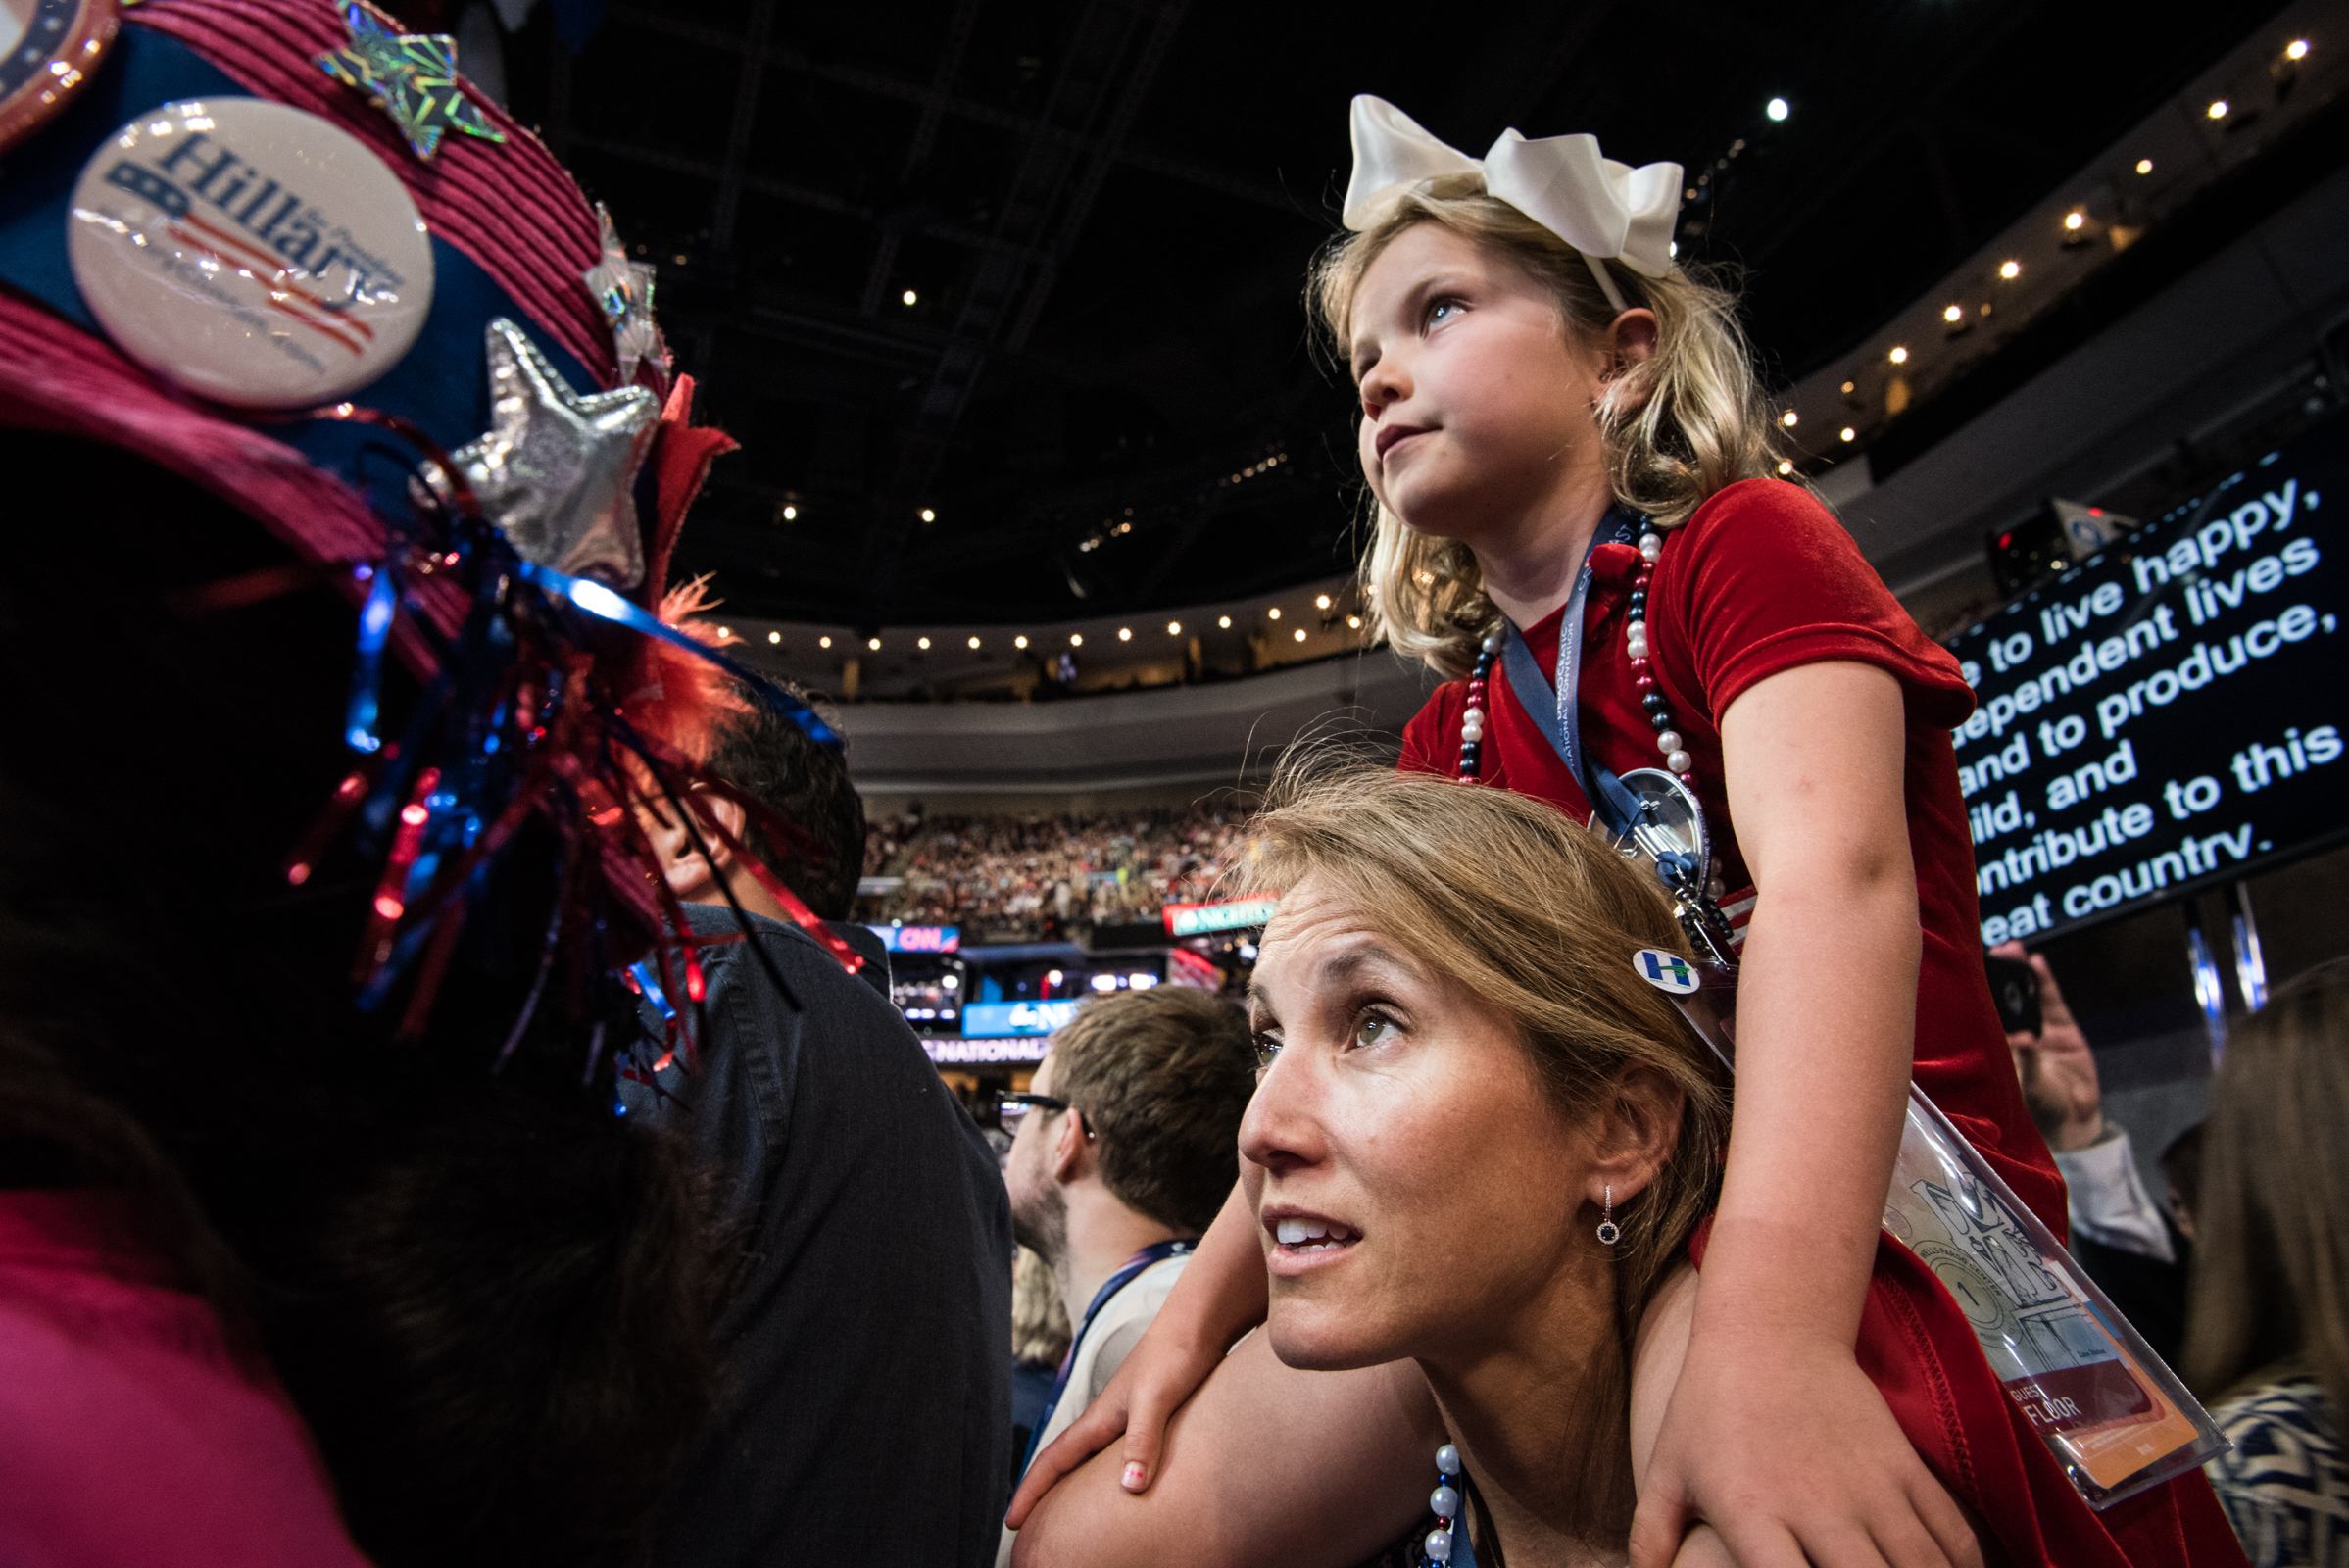 Tracey Turner of California holds her daughter Somerset, 6, upon her shoulders so she could be able to view the Democratic National Convention from the floor level at the Wells Fargo Center in Philadelphia on Monday, July 25, 2016. (Michael Ares / Philadlephia Inquirer)